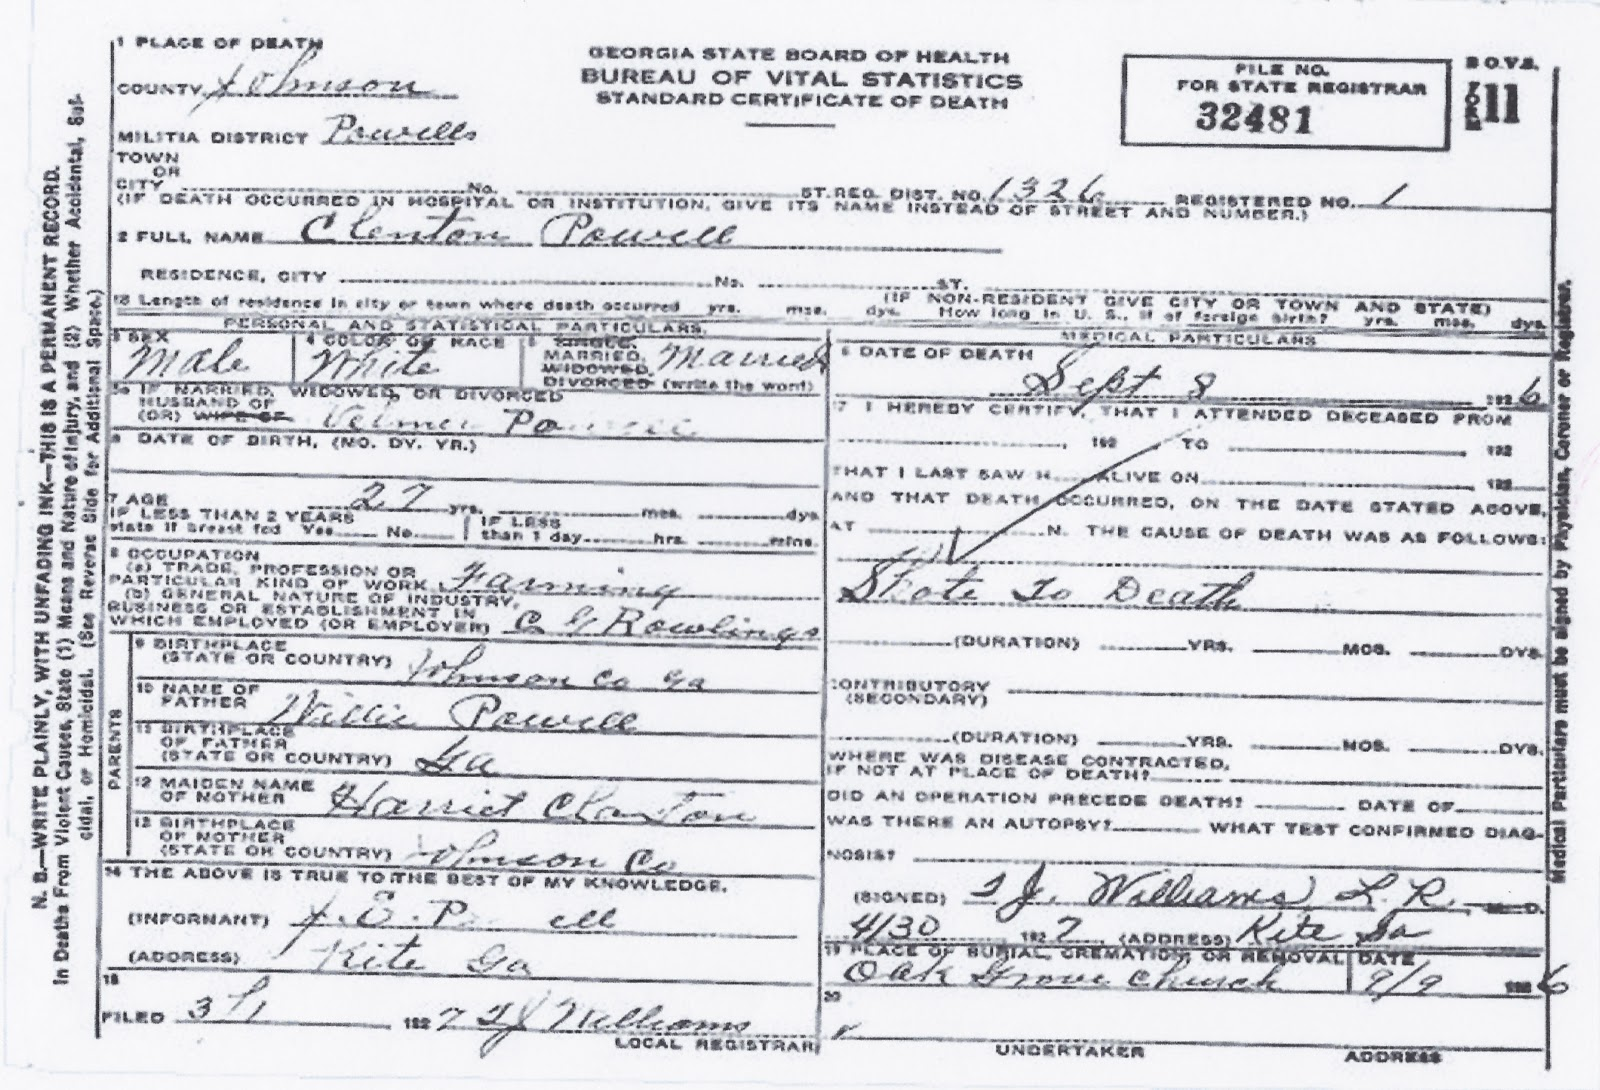 My tapley treed its branches september 2012 i did however acquire a copy of clinton powells death certificate which shows he was shot to death and died on september 8 1926 1betcityfo Choice Image